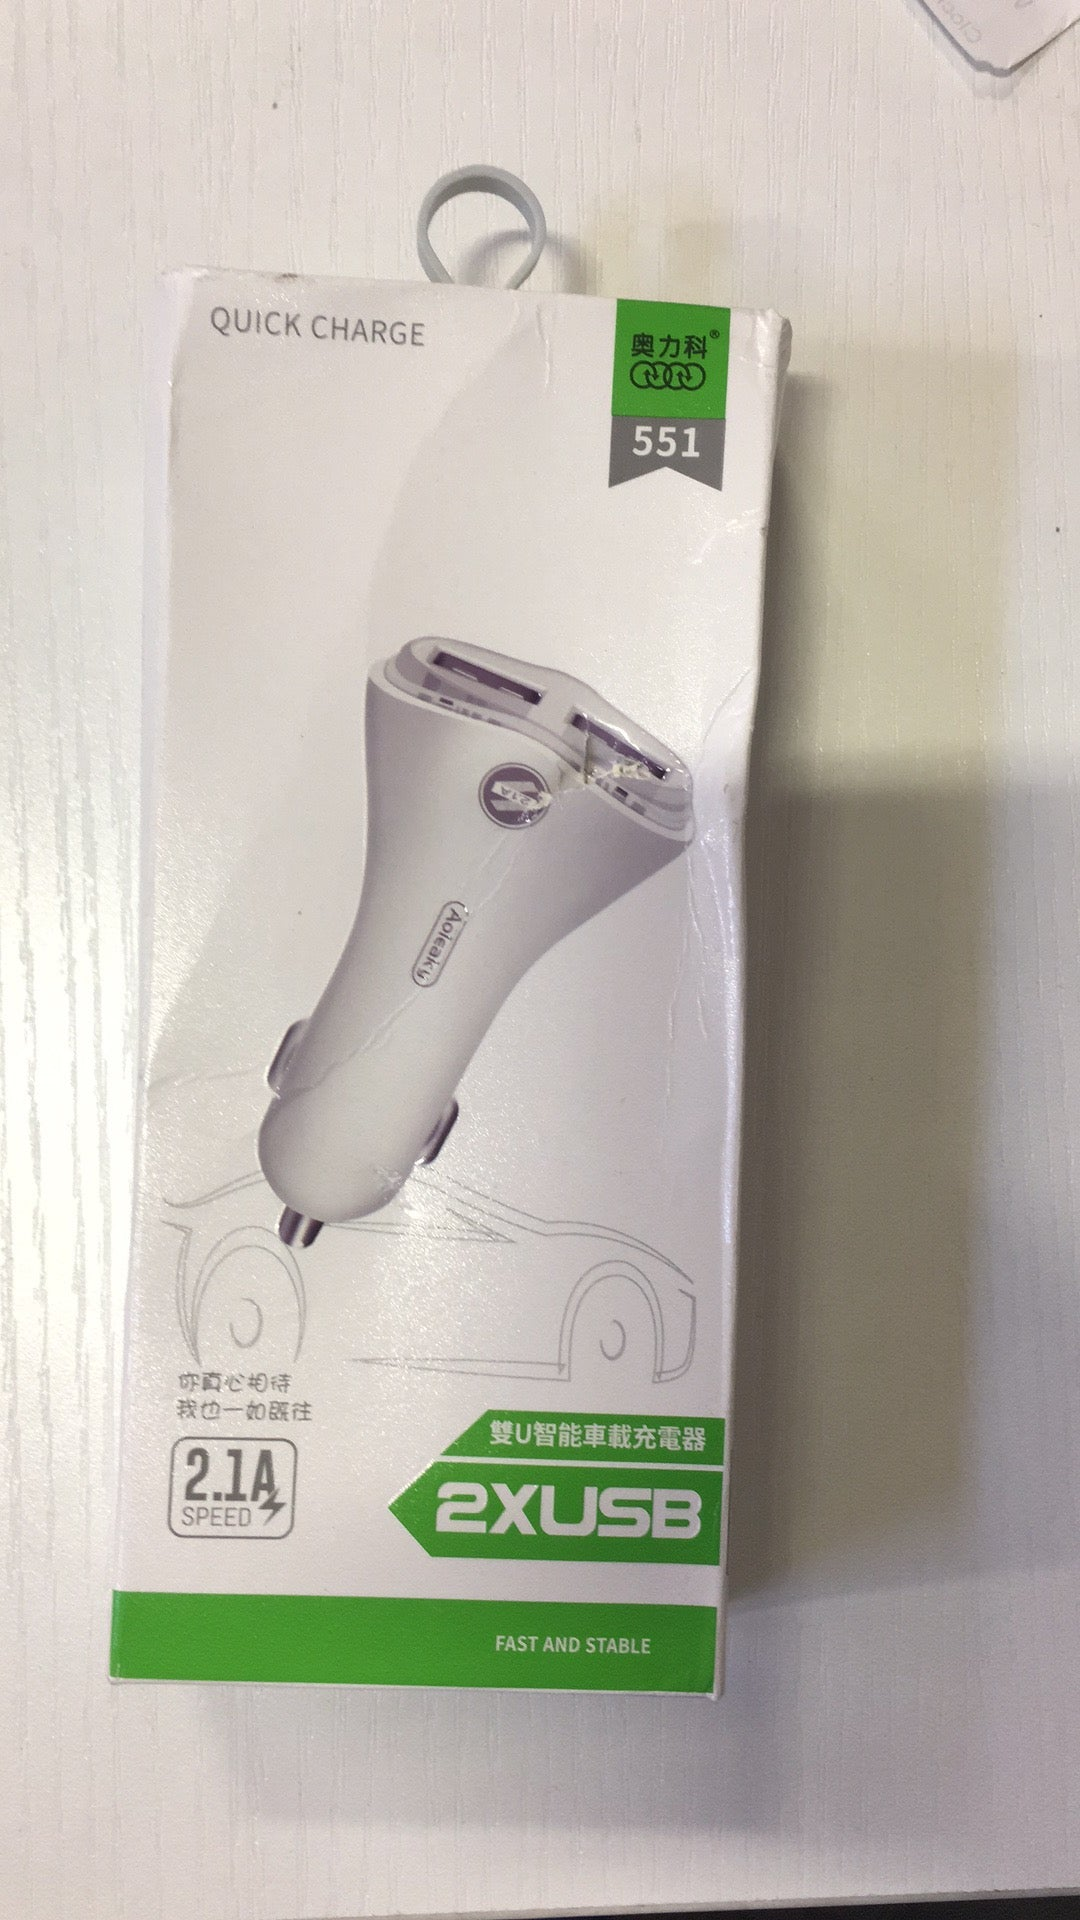 CAR CHARGER 551 AOLIKE 2XUSB QUICK CHARGE 2.1A SPEED FAST AND STABLE $3.99 * - Home Idol Home Improvement Outlet